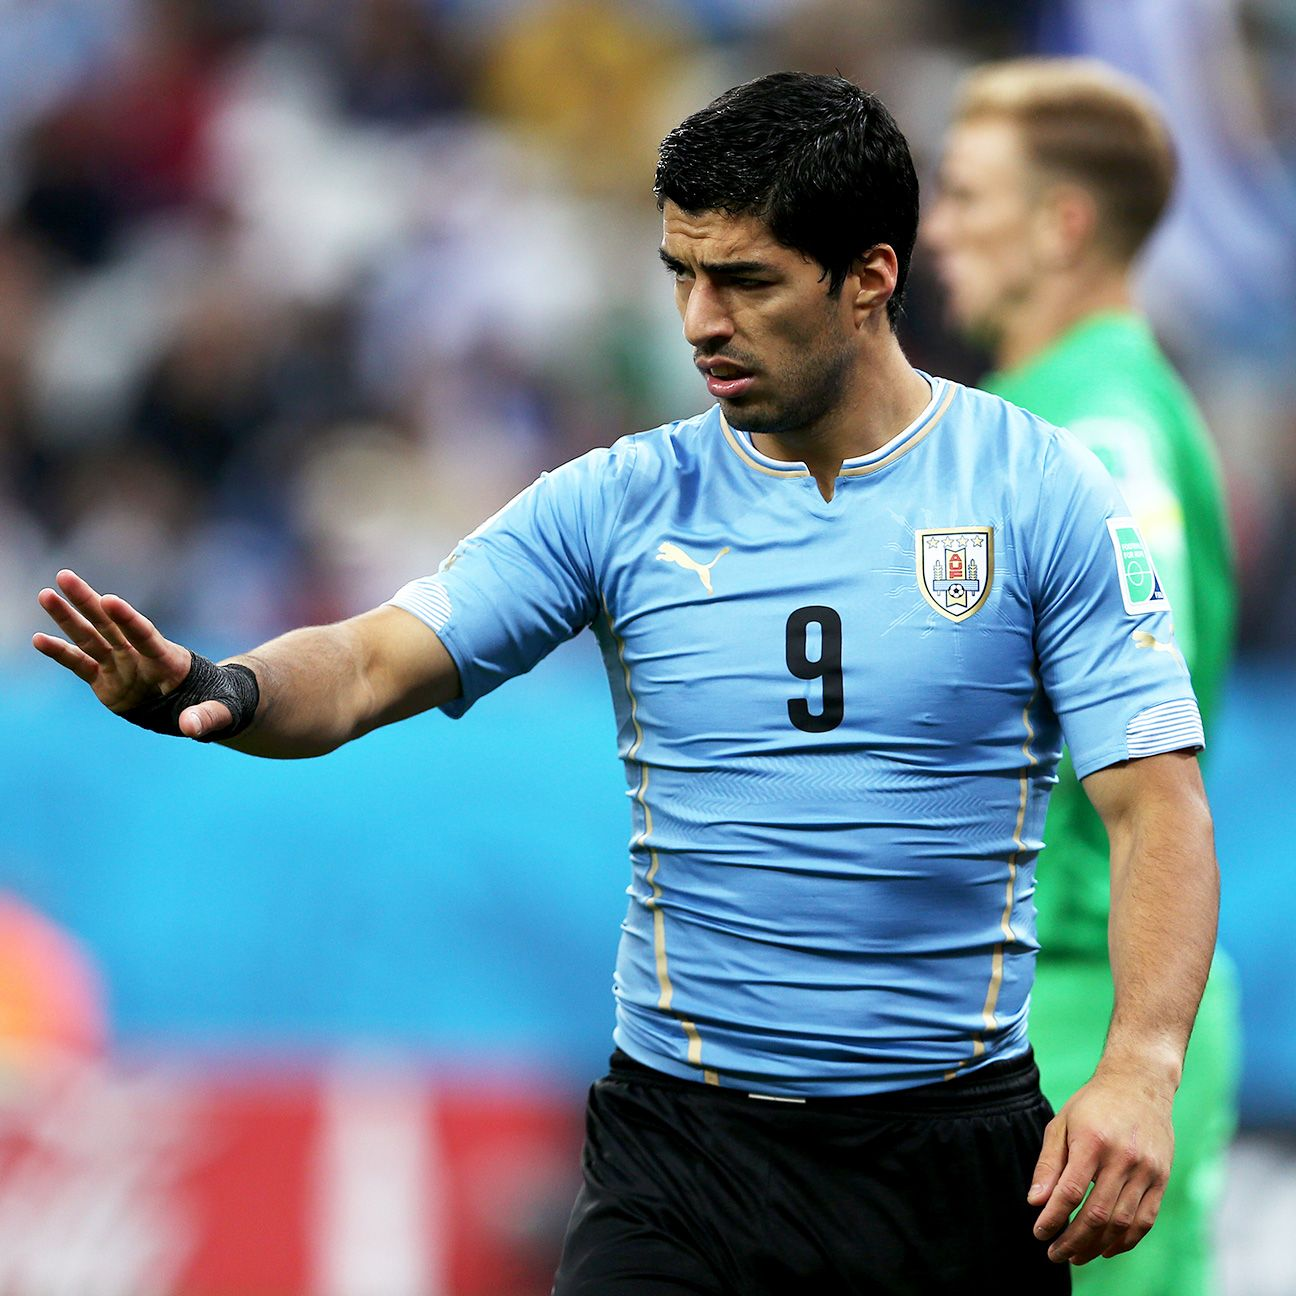 Uruguay's Luis Suarez issued an apology on Monday for biting Italy's Giorgio Chiellini.